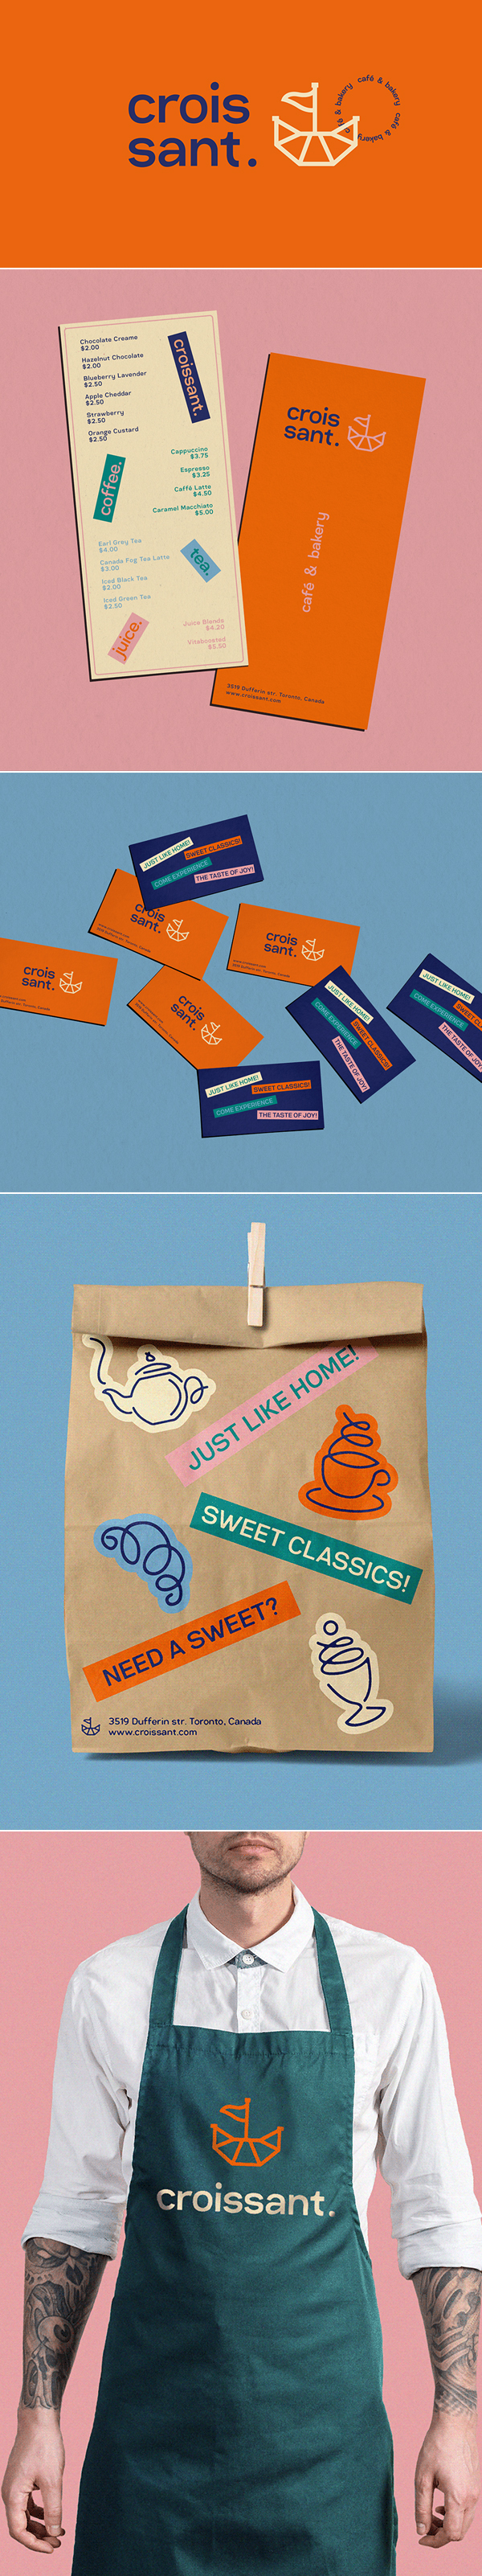 Croissant Cafe & Bakery Branding by Dave Arustamyan